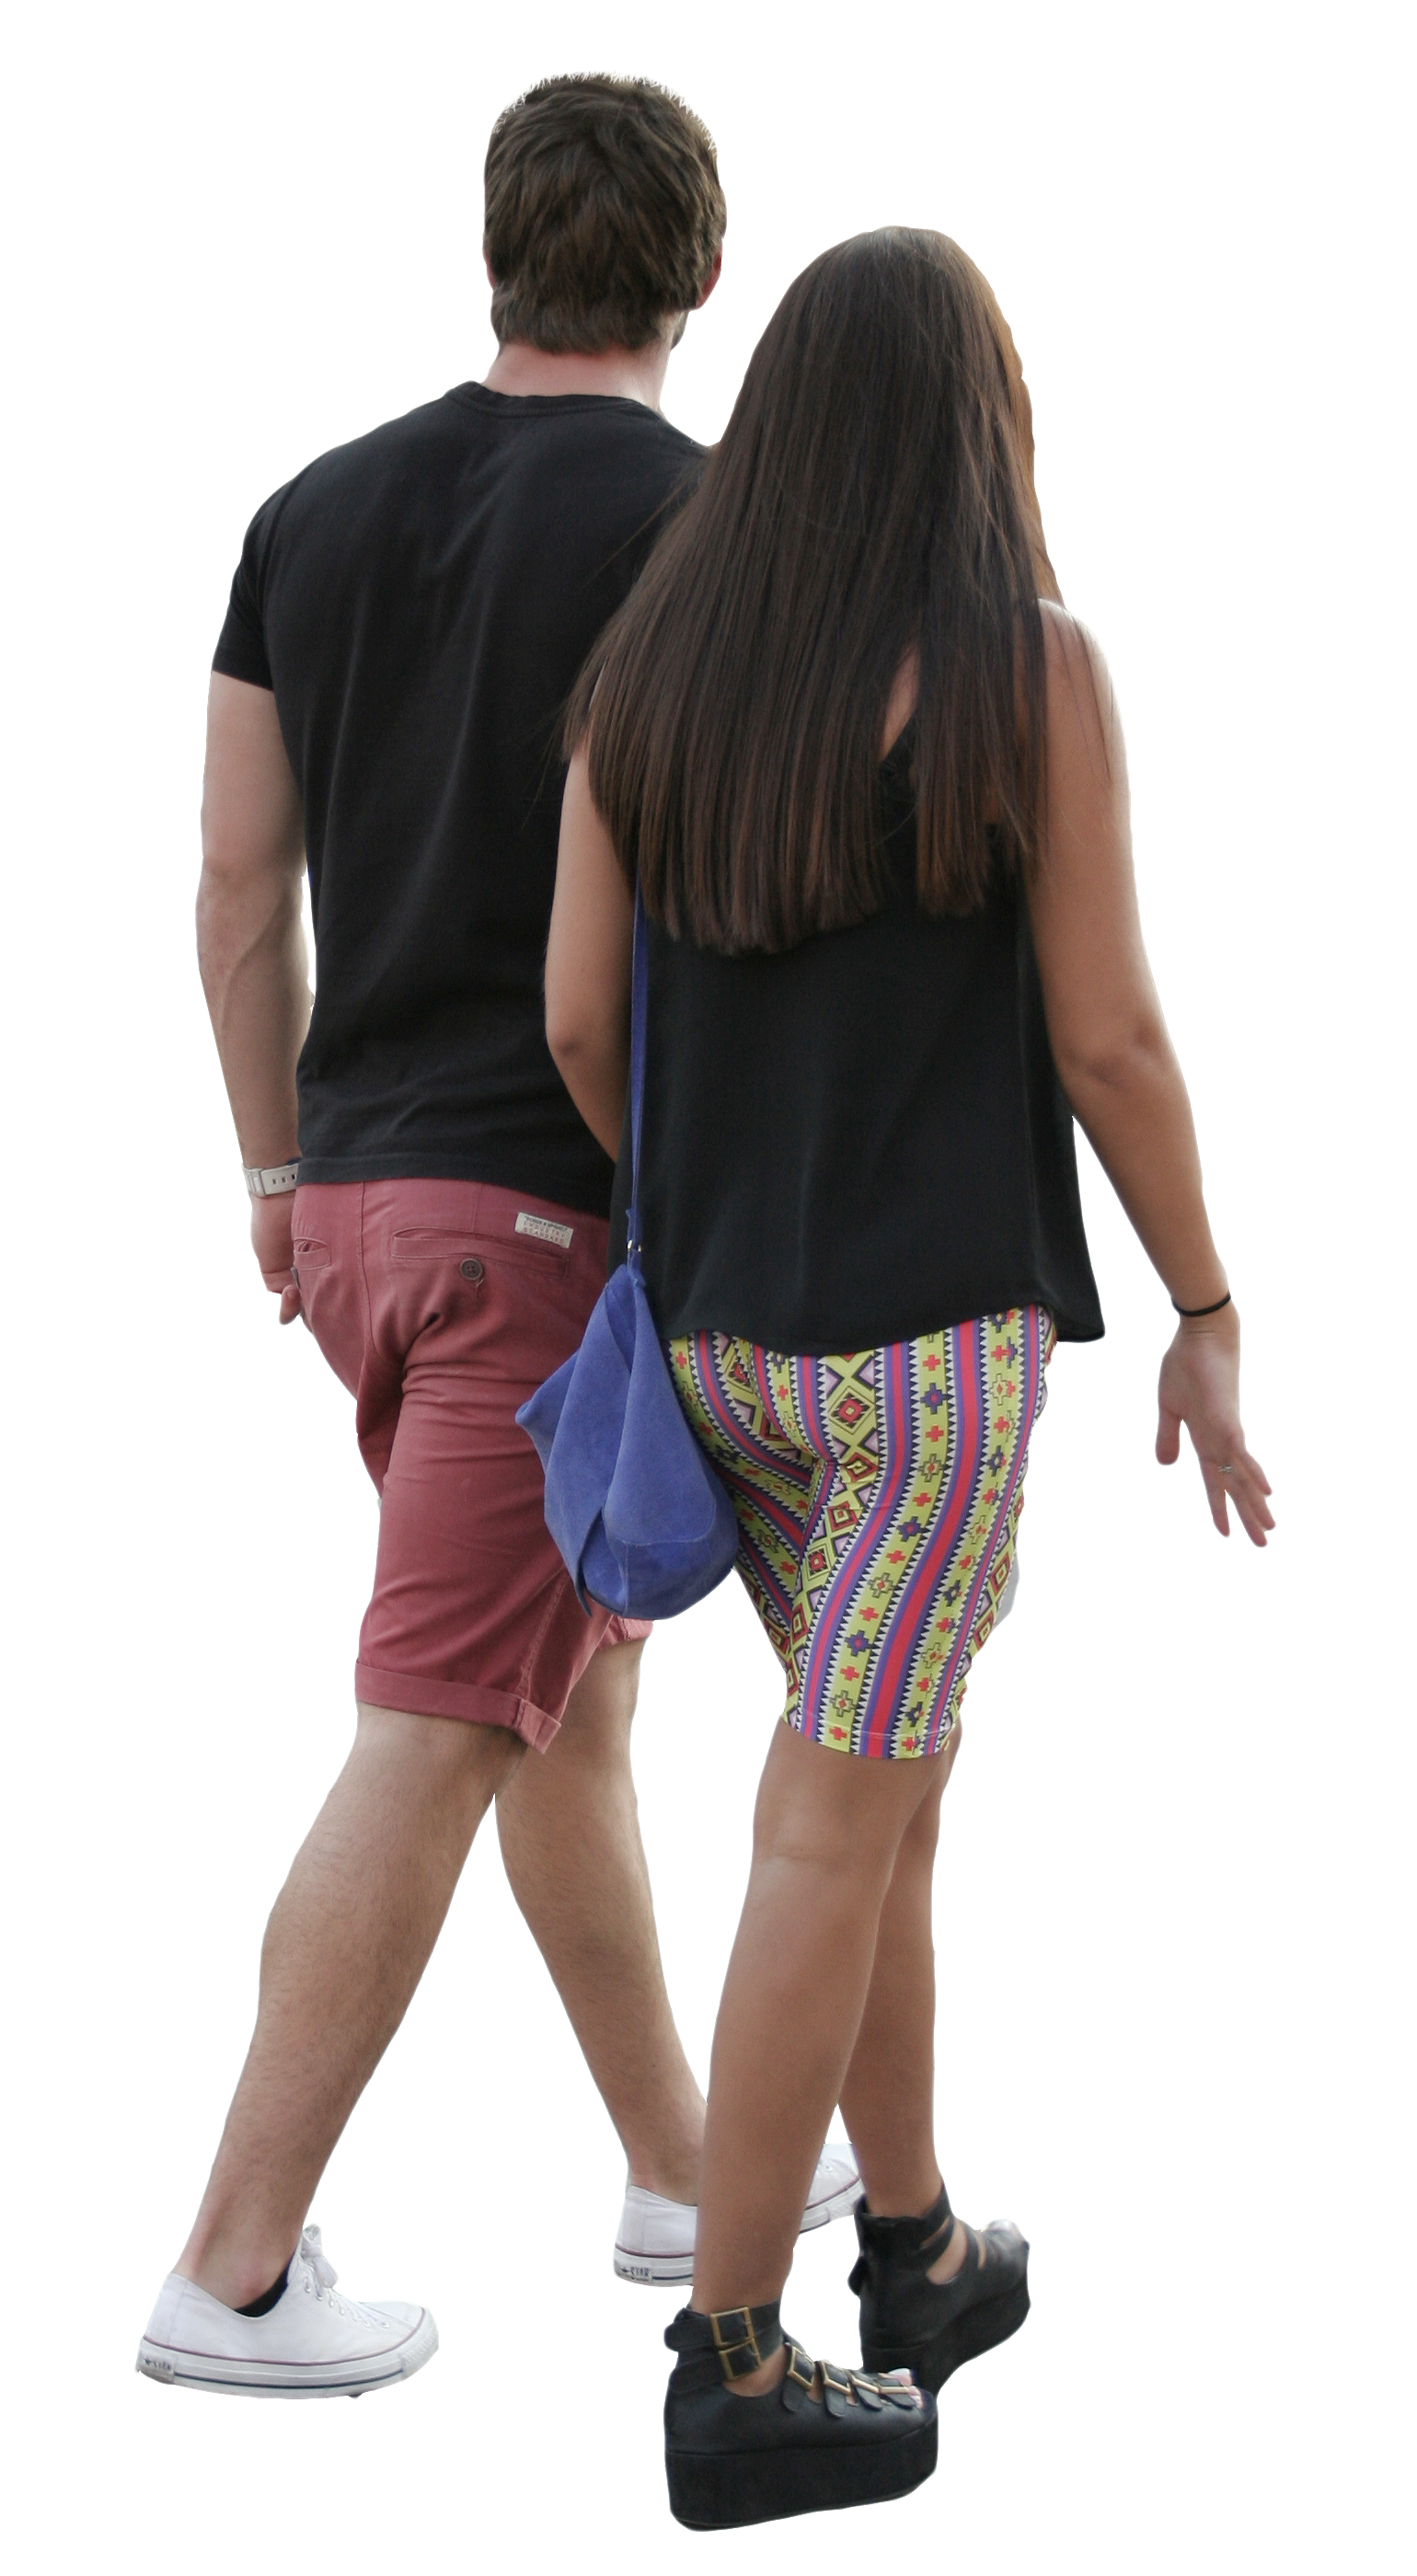 People .png. Couple free download transparent